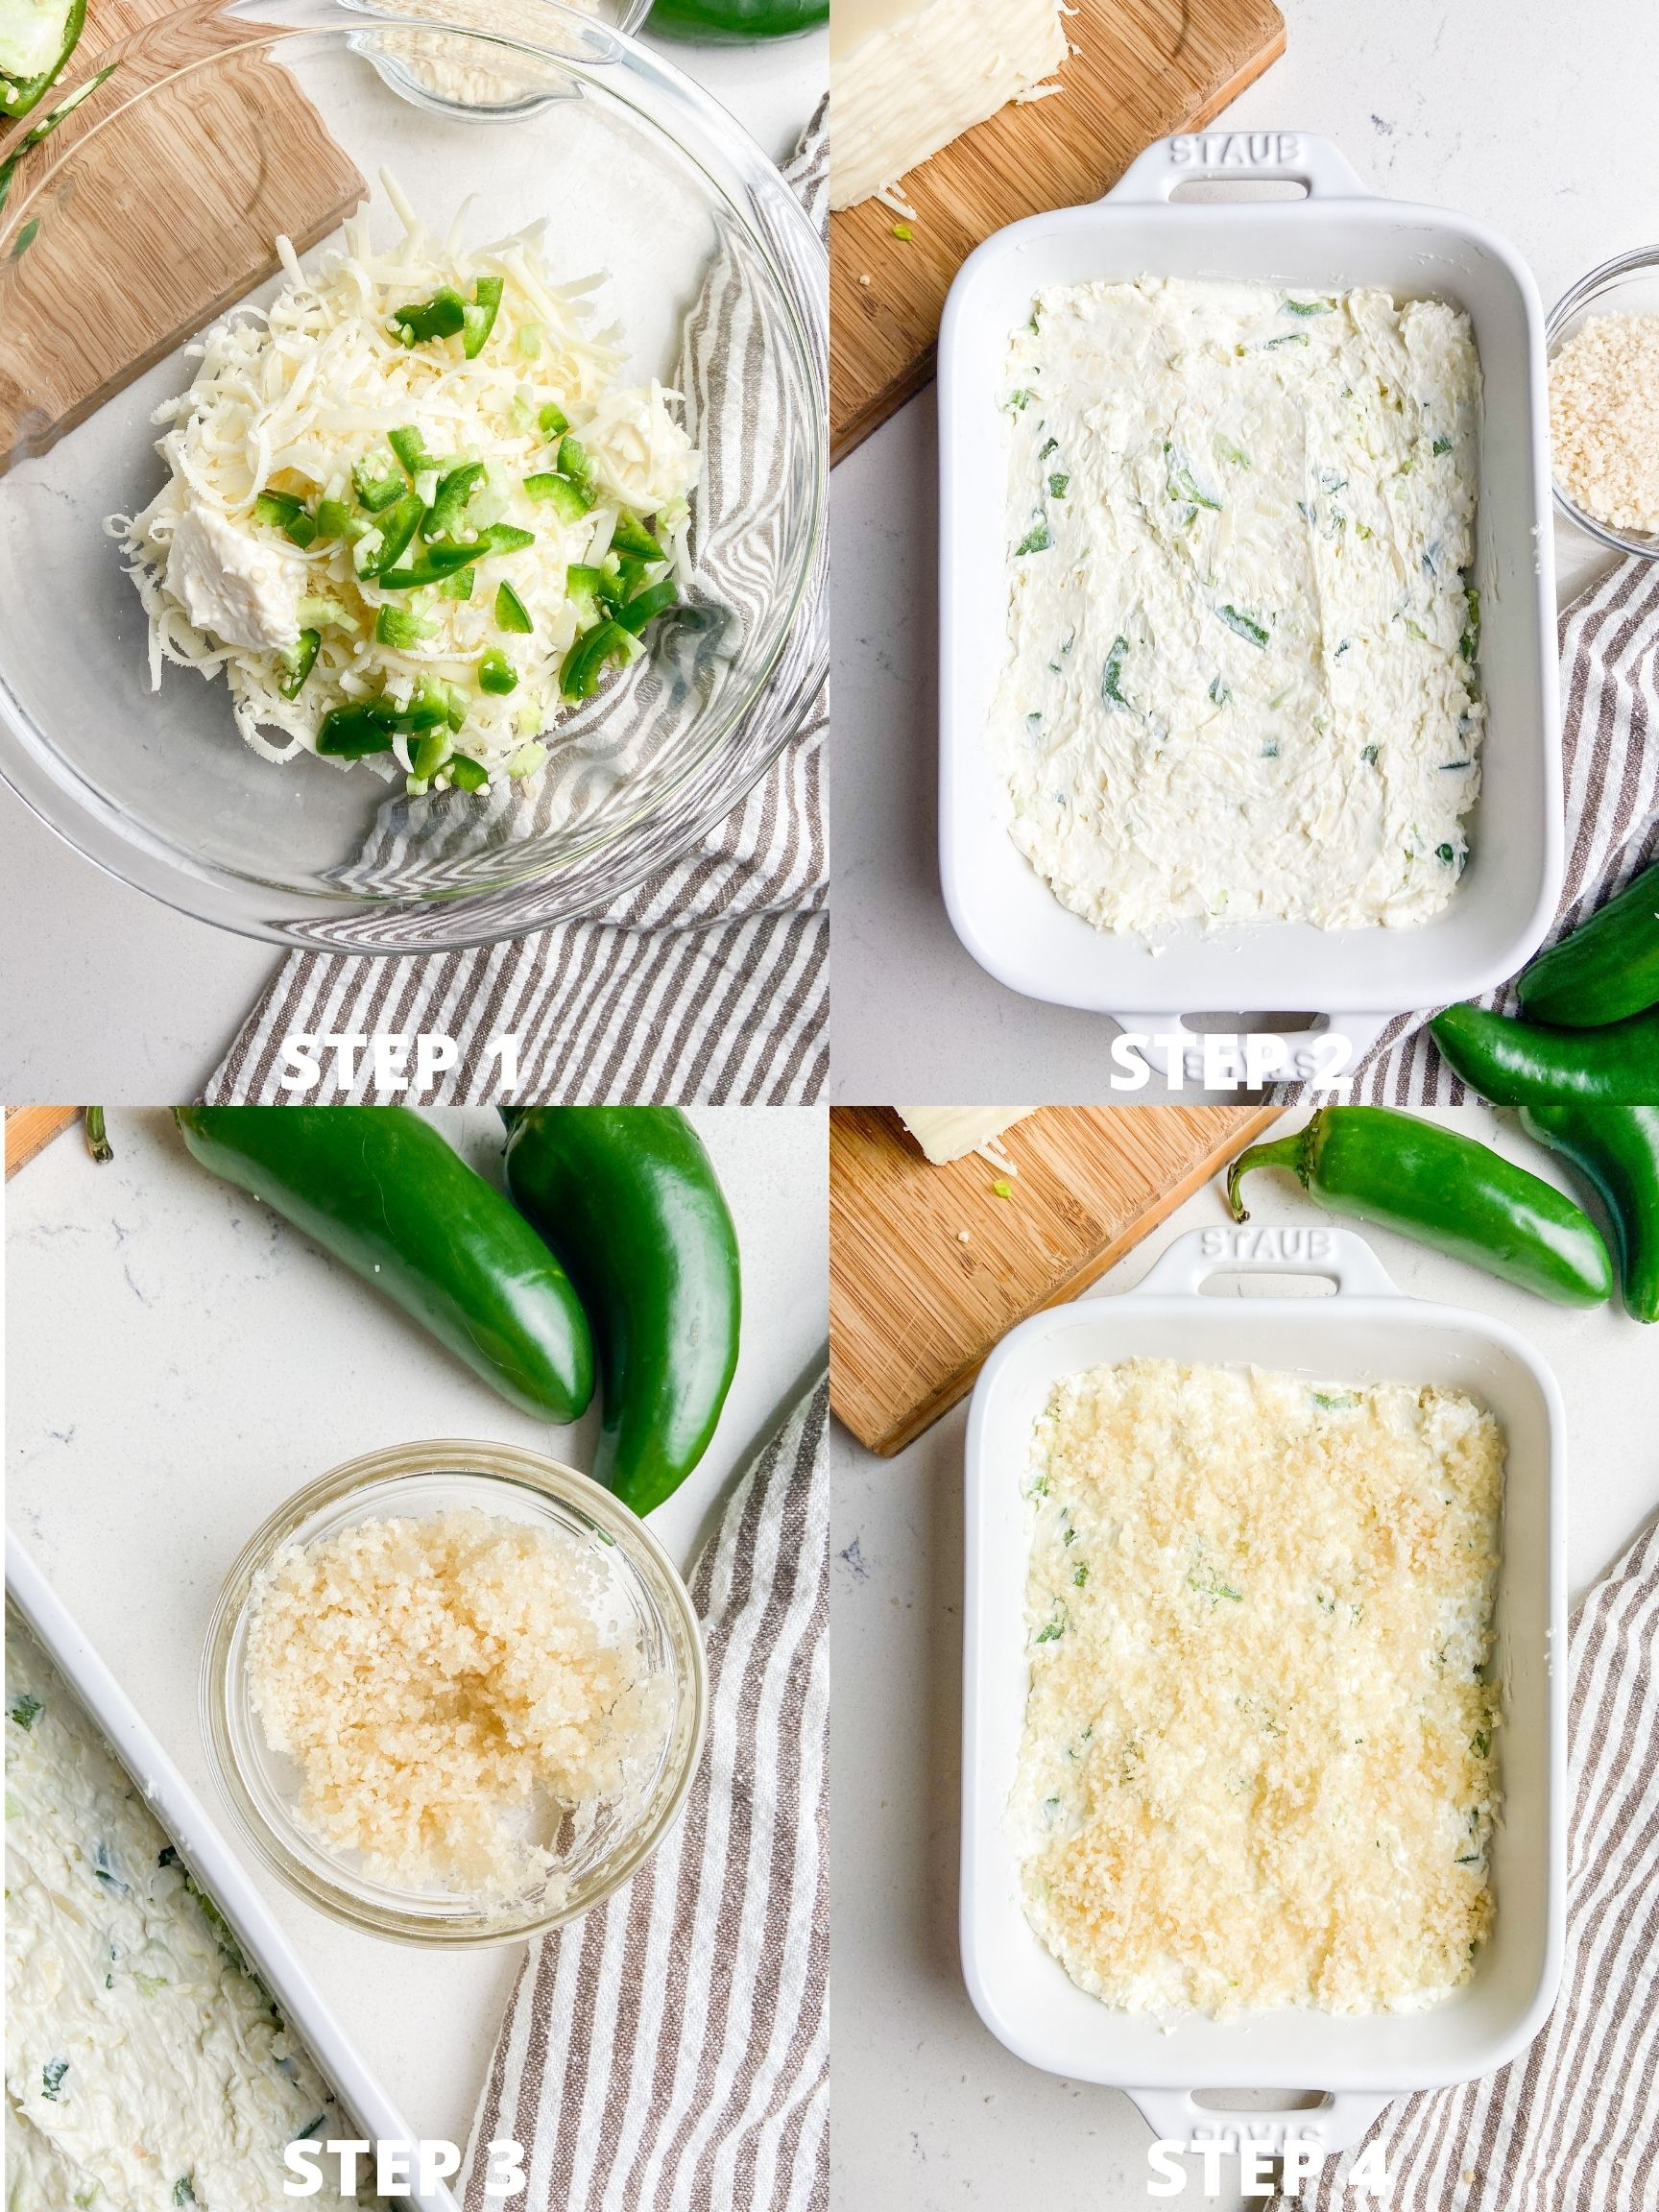 Step by step photos for jalapeno popper dip.